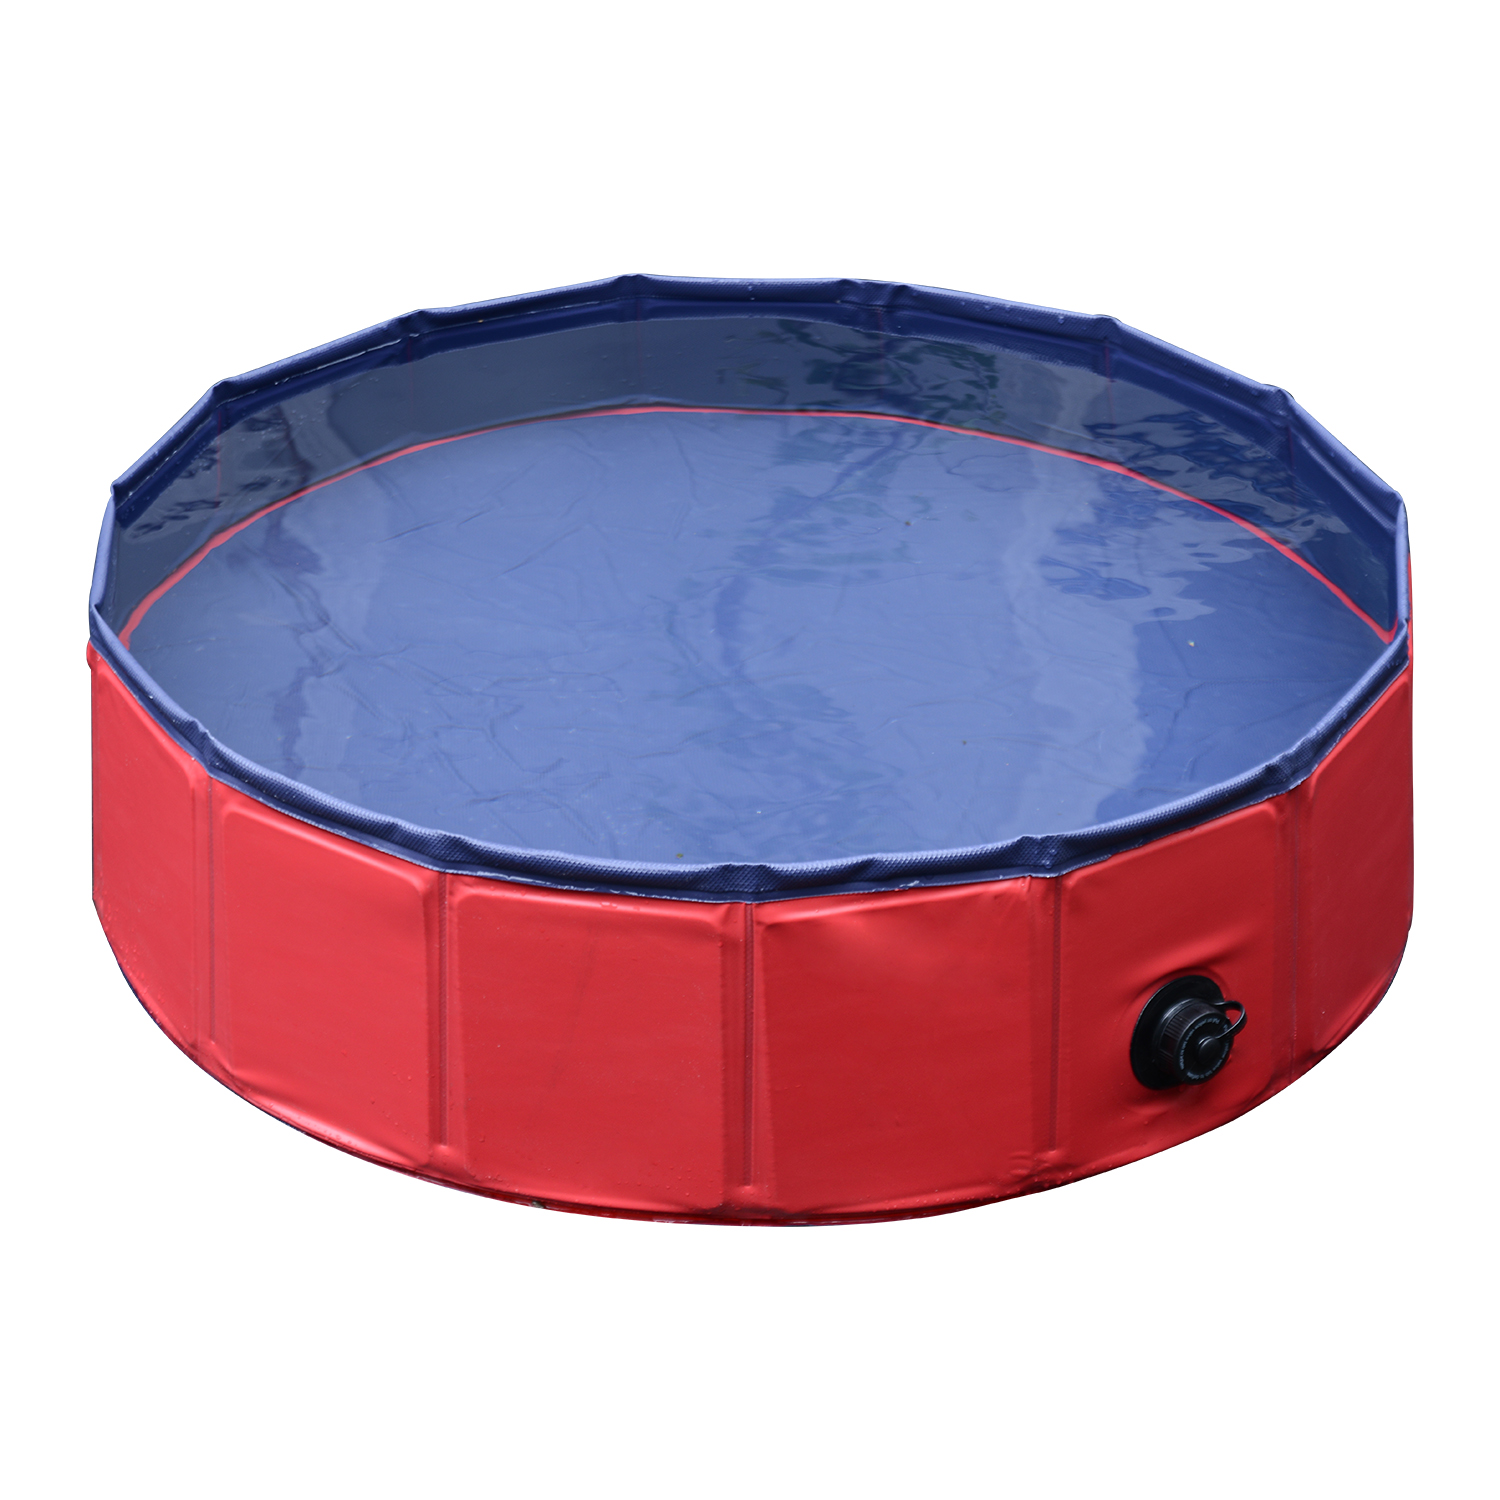 Pawhut 12 x 63 Foldable PVC Pet Swimming Pool Red and Blue by Aosom